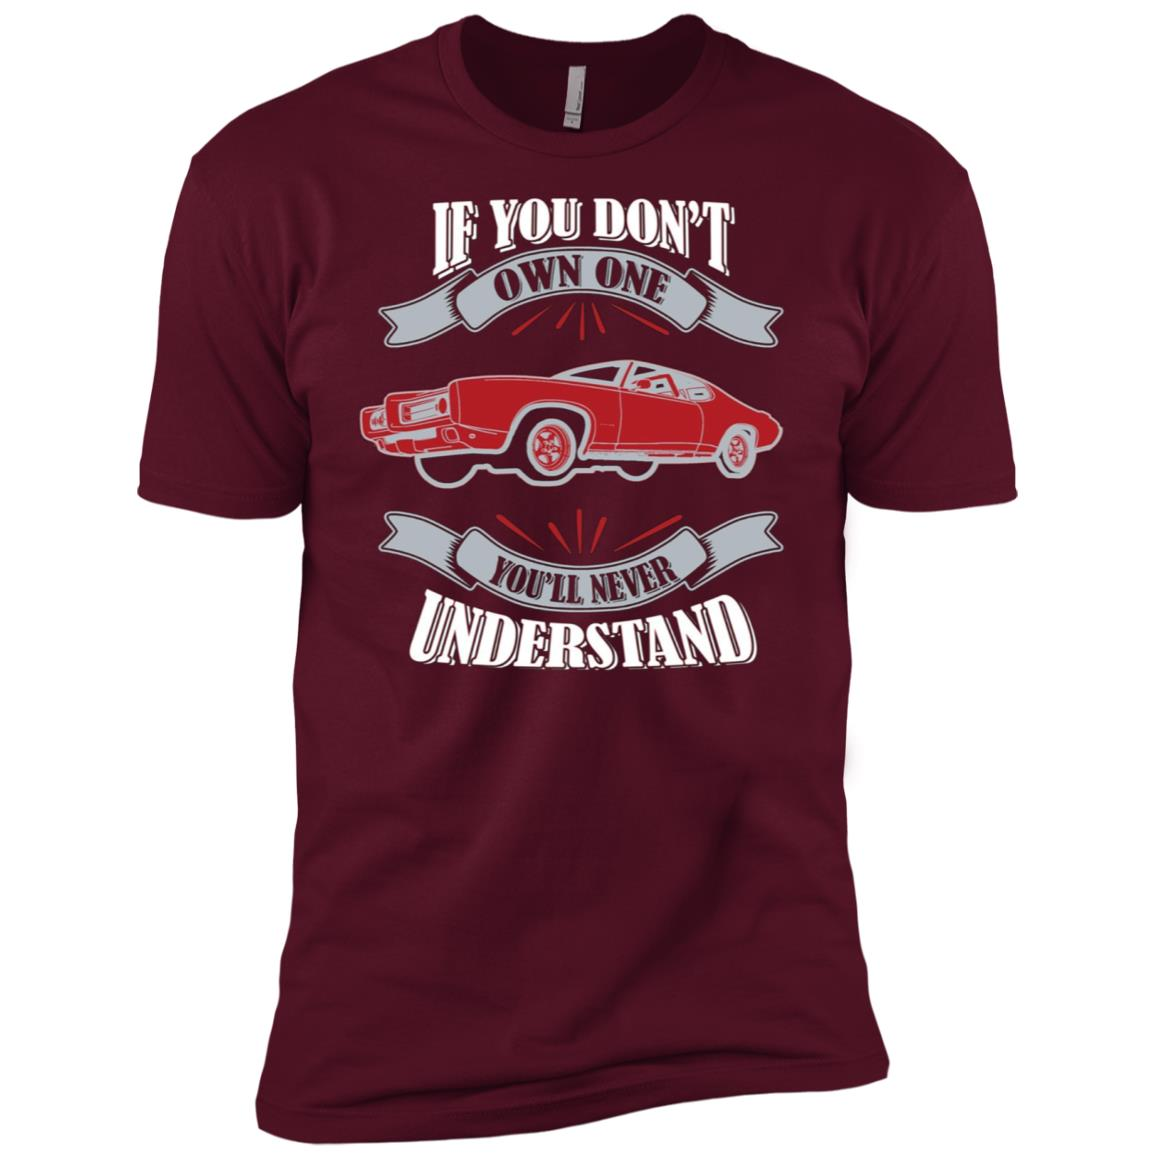 If You Don't Own One – Gto Men Short Sleeve T-Shirt